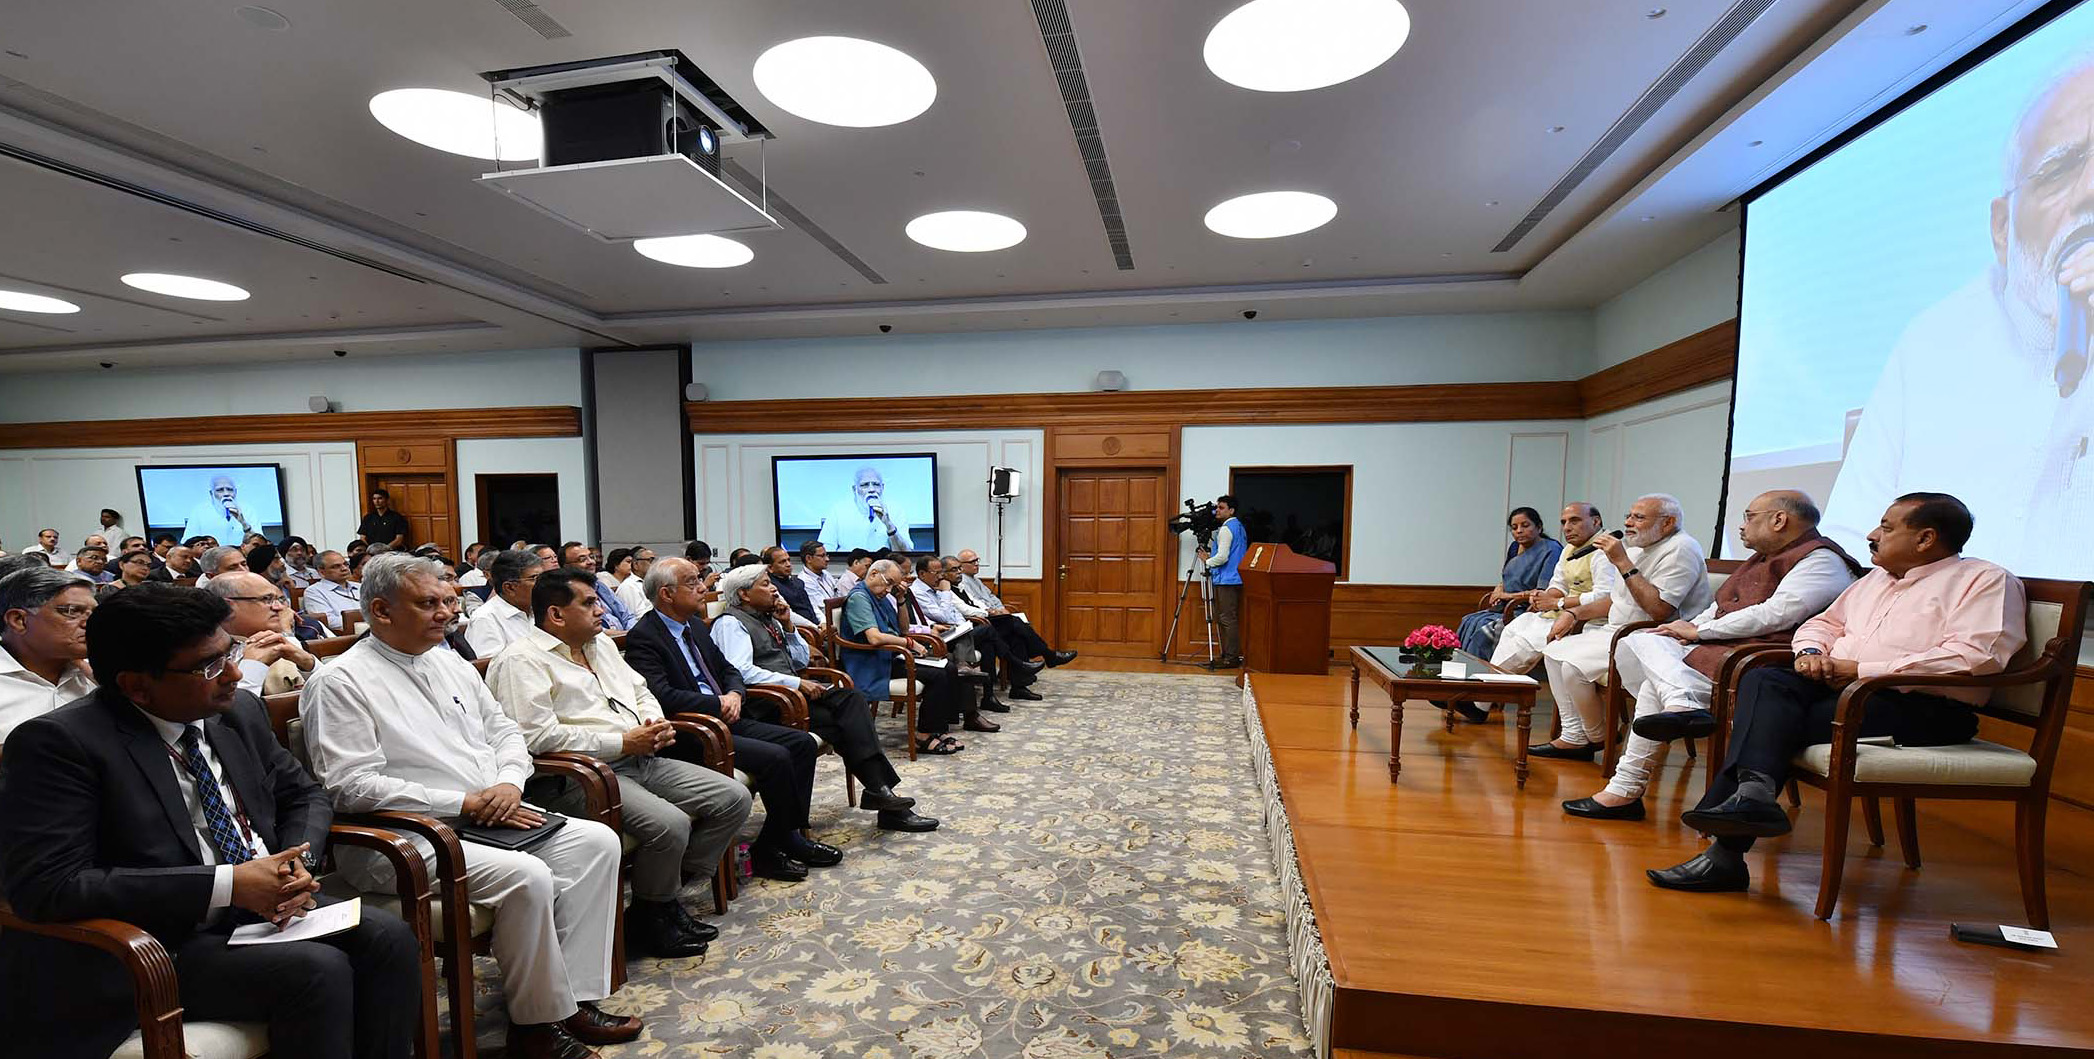 arendra Modi interacting with the Secretaries to the Government of India